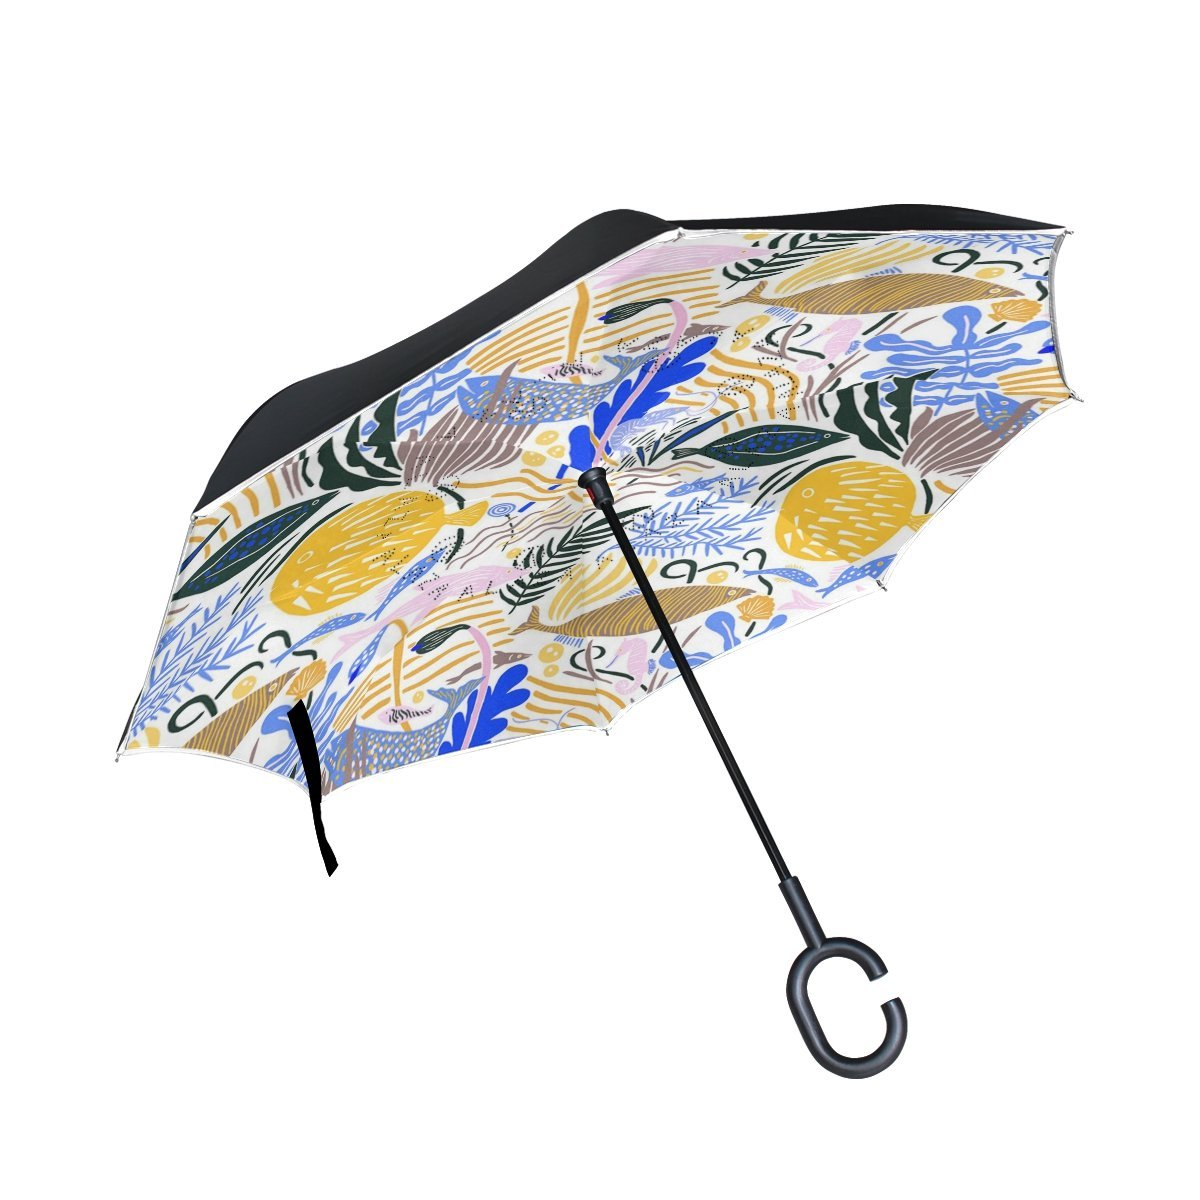 Custom The Blue Whale Compact Travel Windproof Rainproof Foldable Umbrella